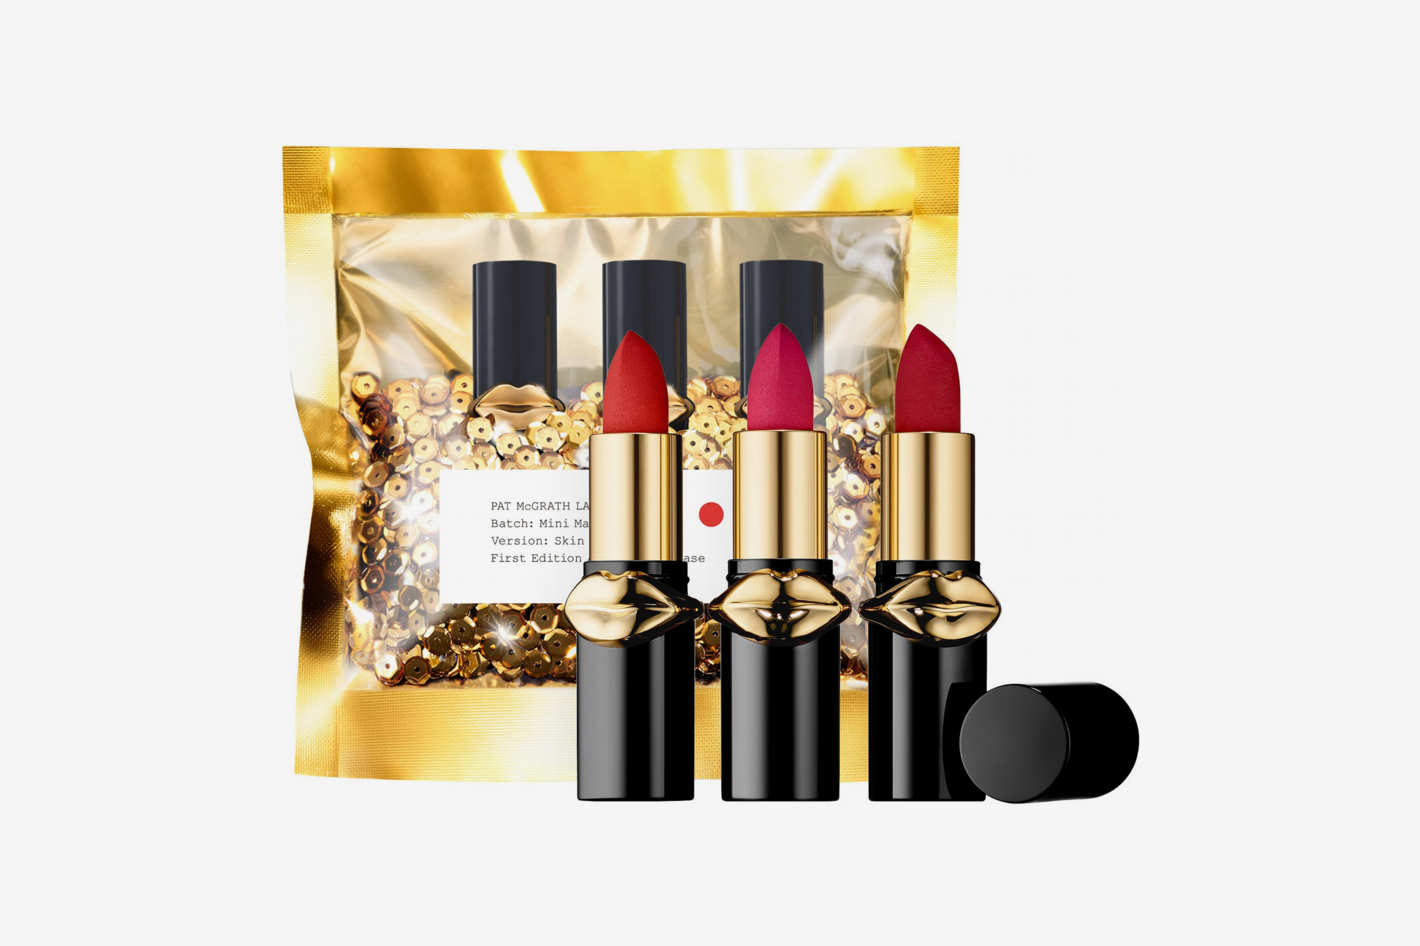 Pat McGrath Lust Mini MatteTrance™ Lipstick Trio